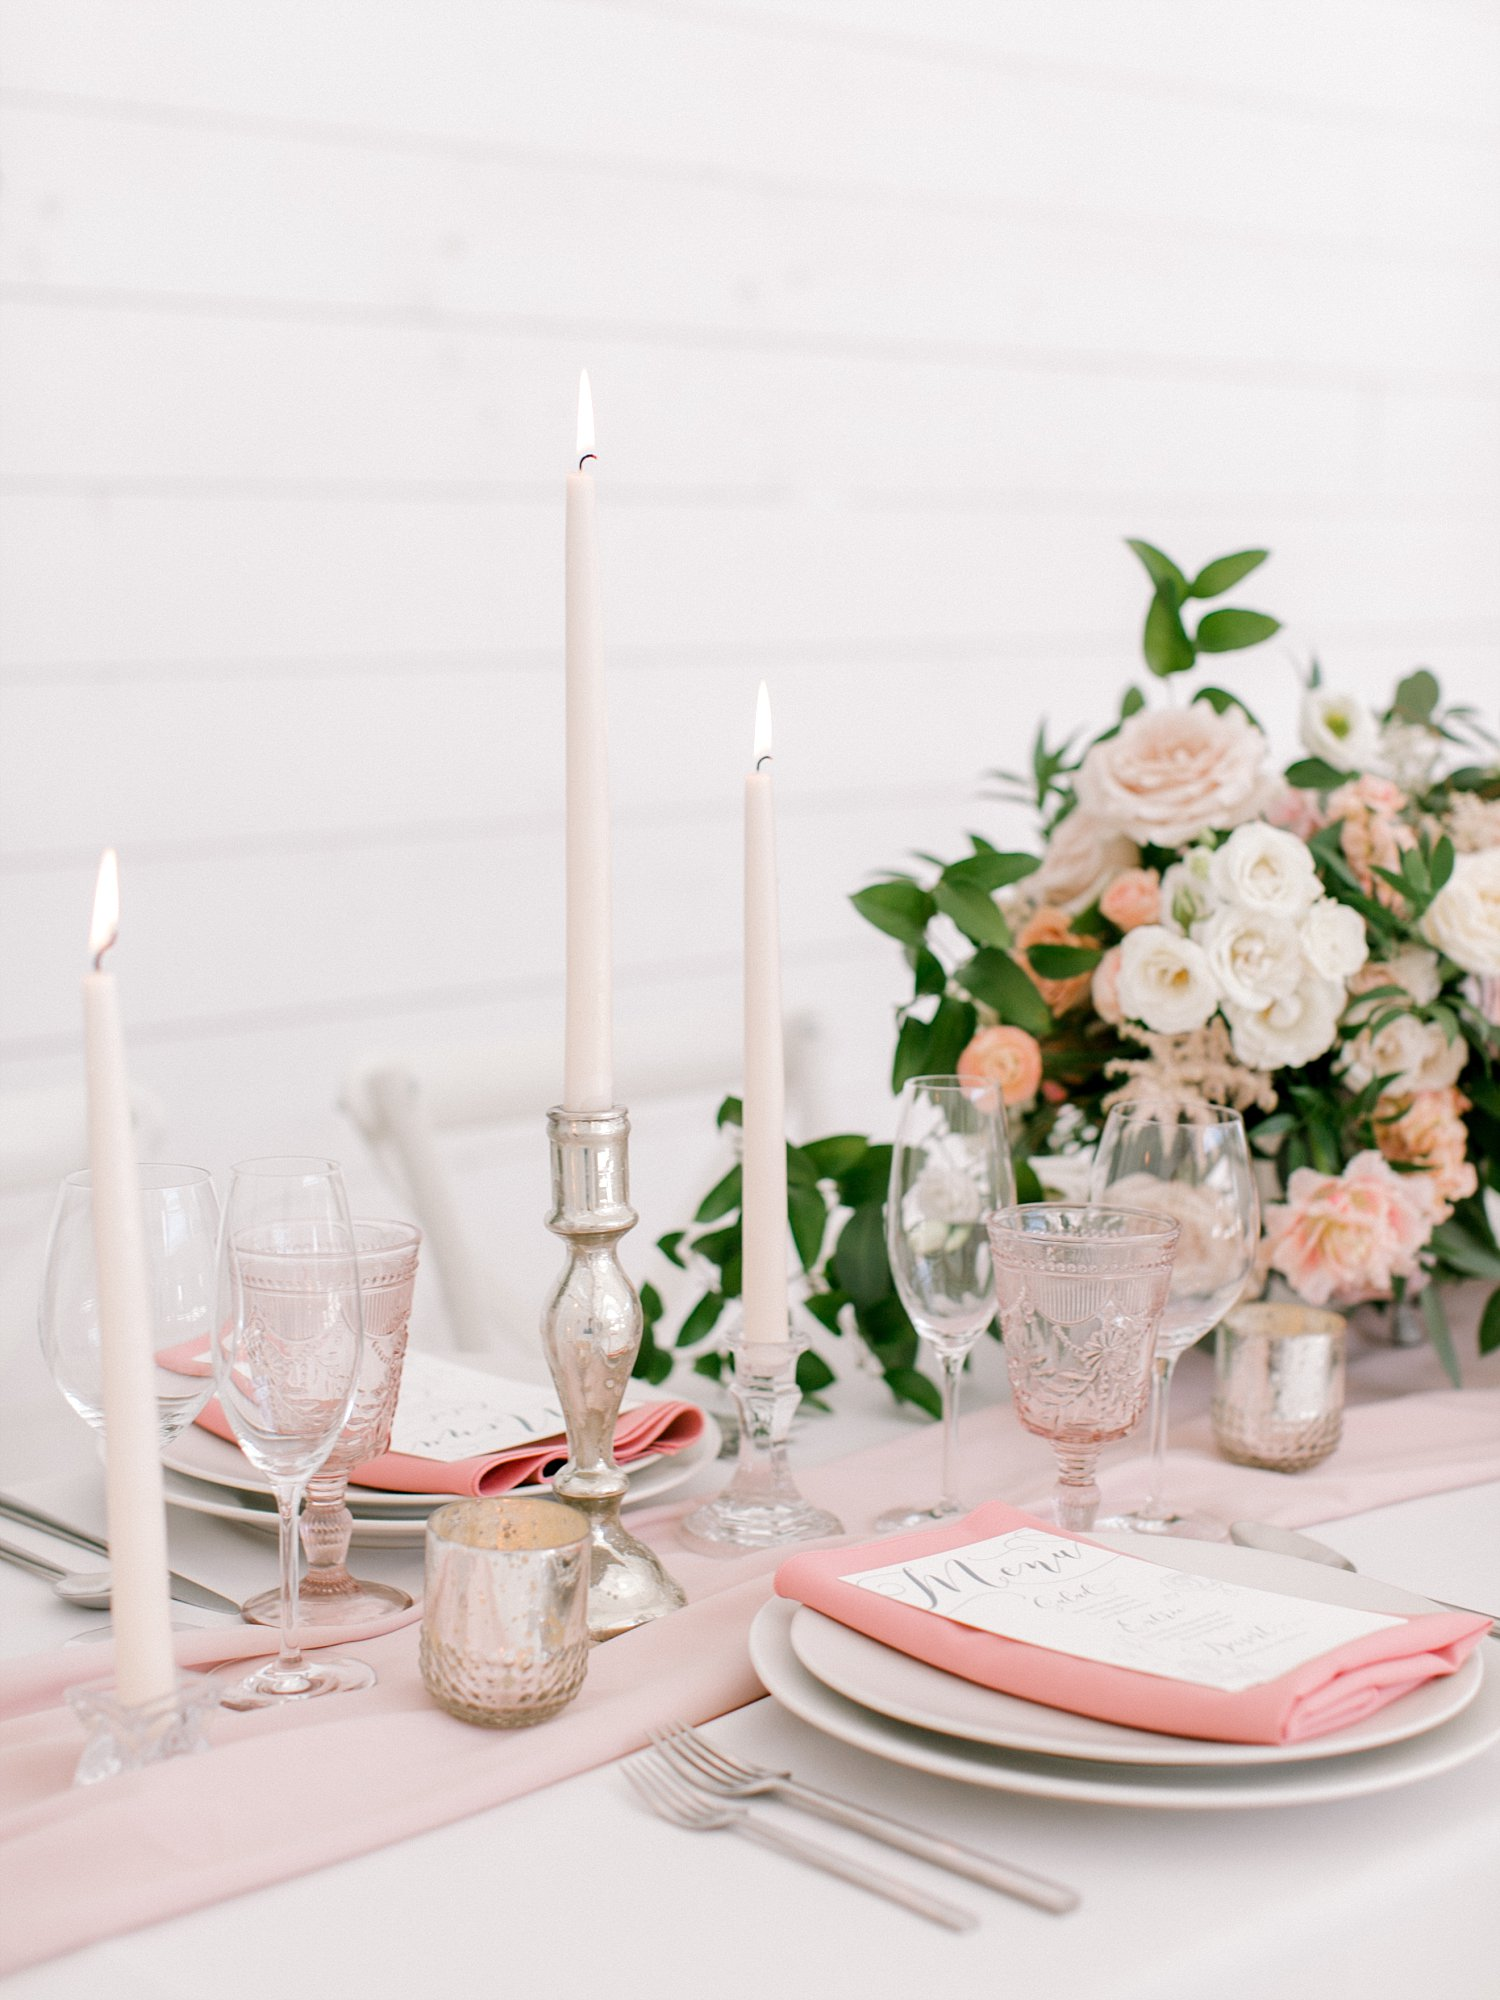 mauve napkin and a blush table runner on a white linen